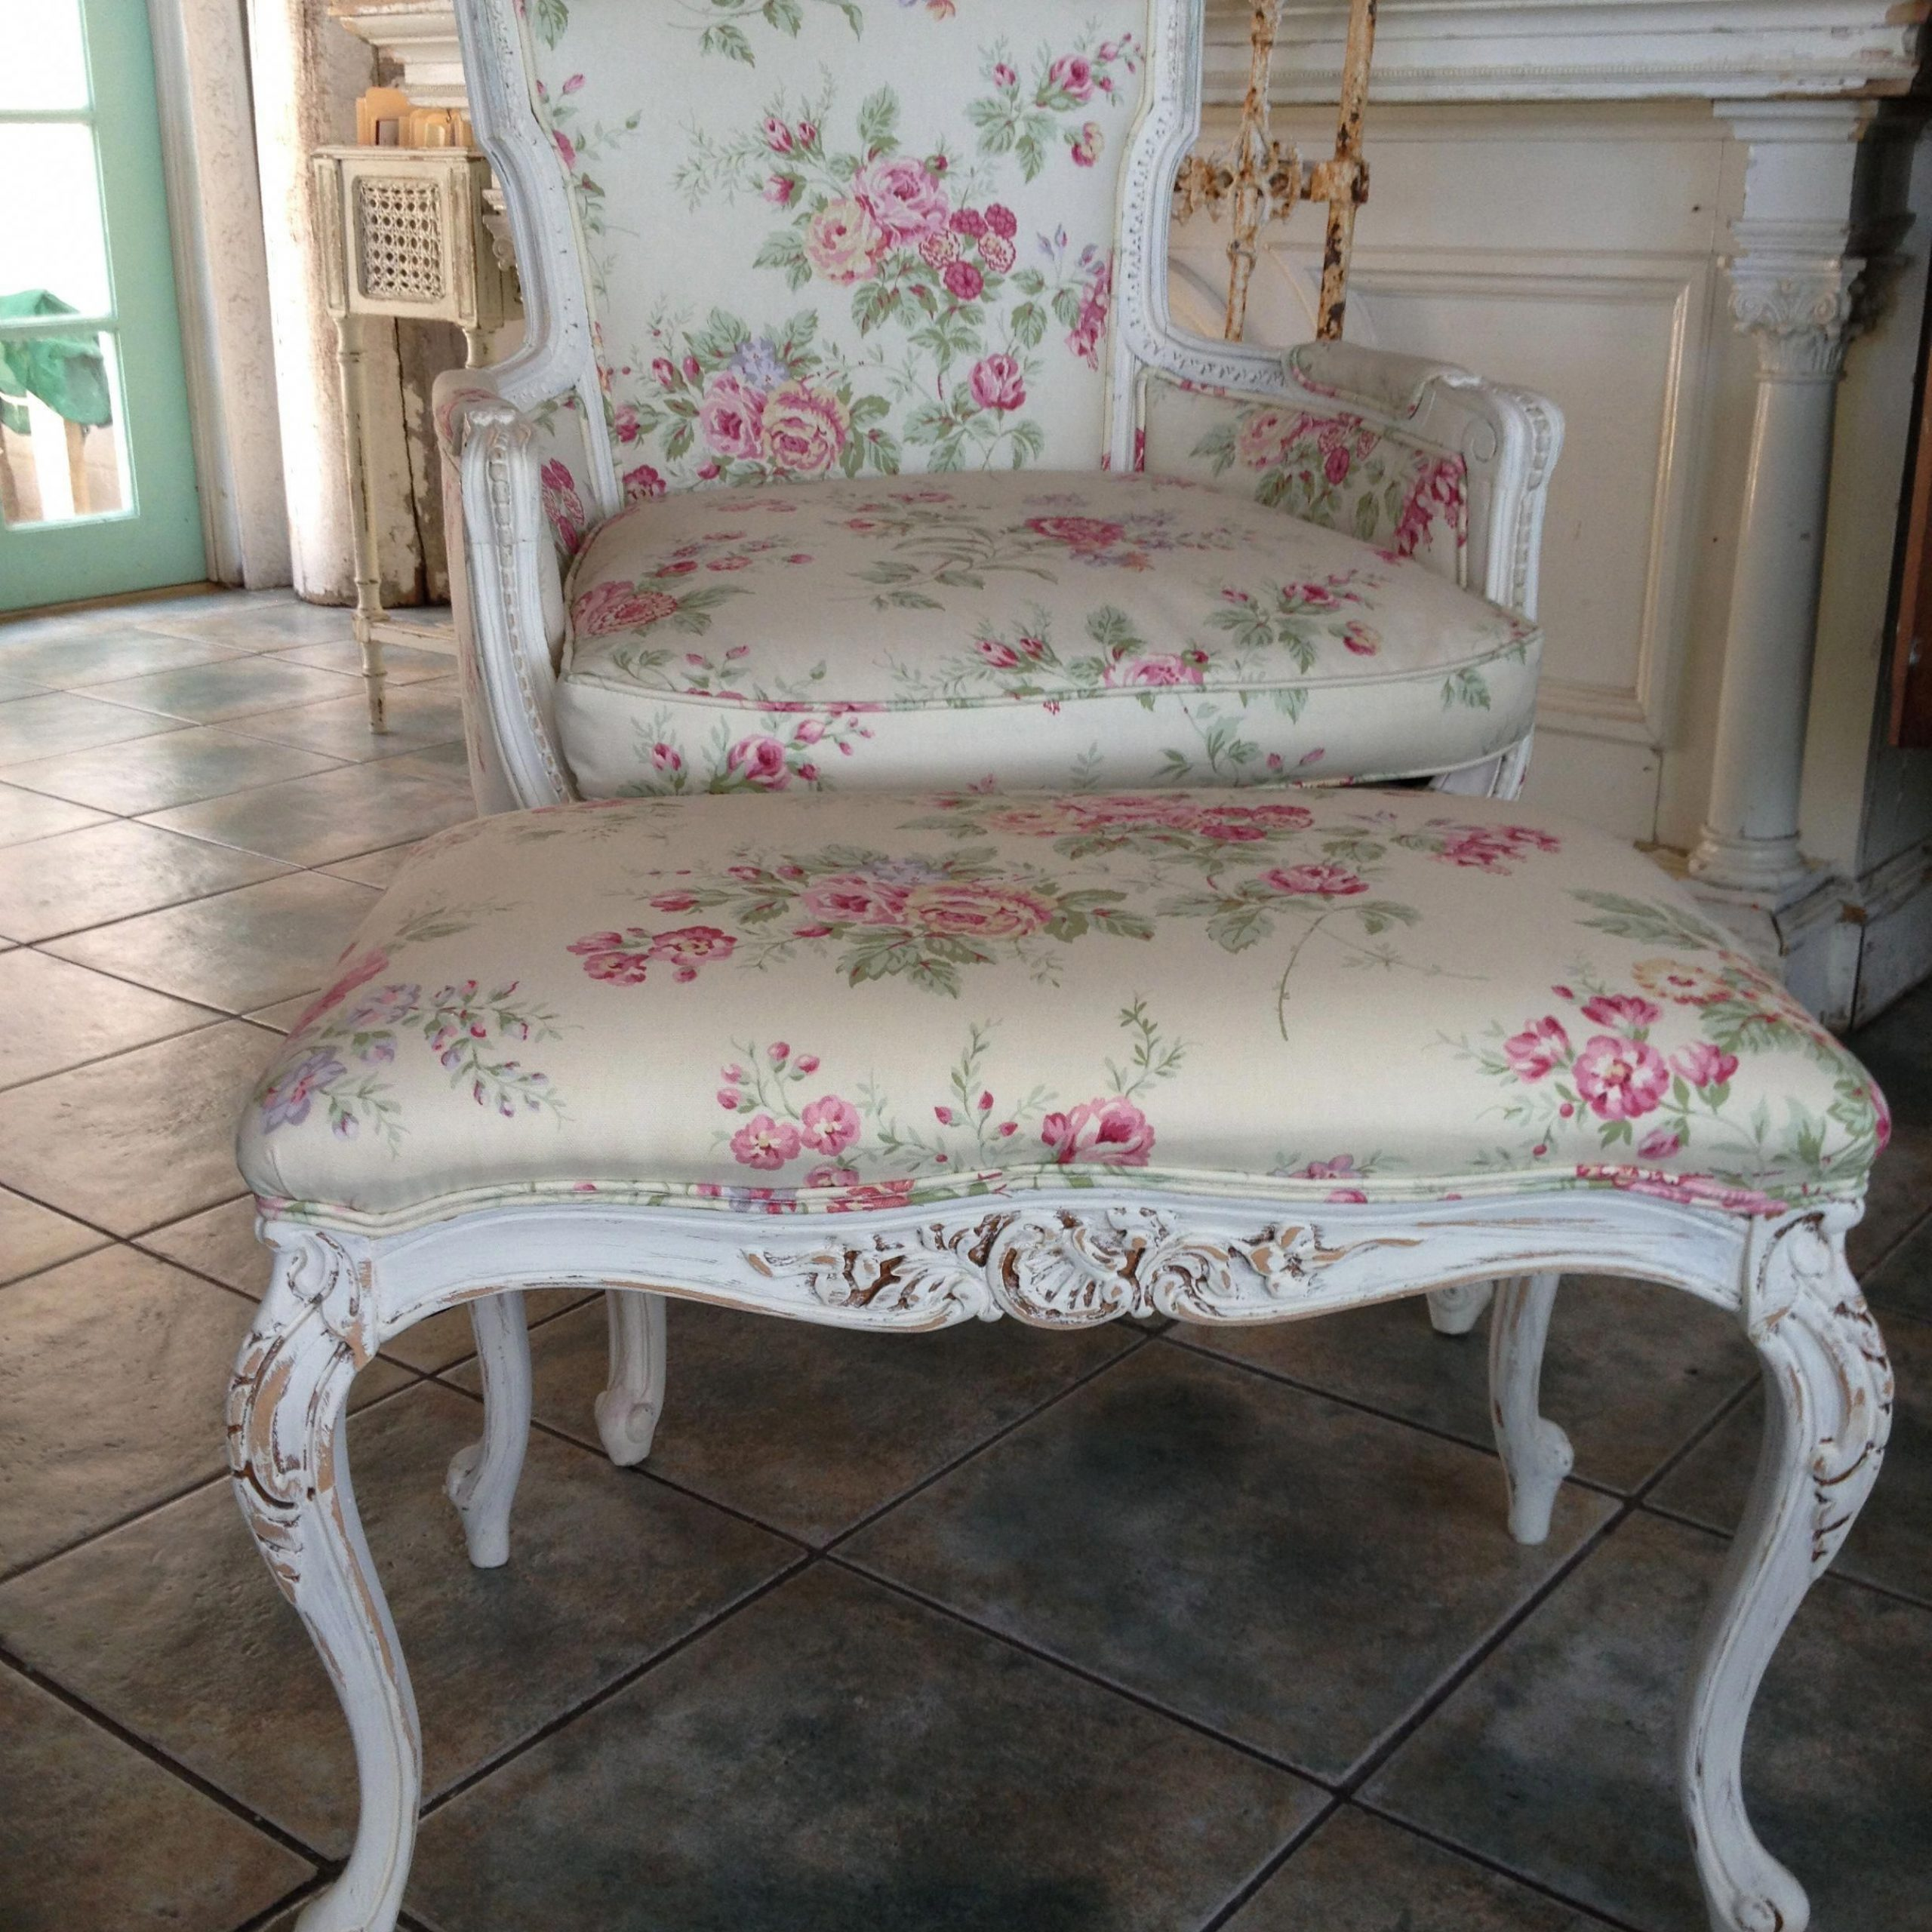 Affable Searched French Country Shabby Chic Home Offer With Regard To Country Cottage Sofas And Chairs (View 4 of 15)